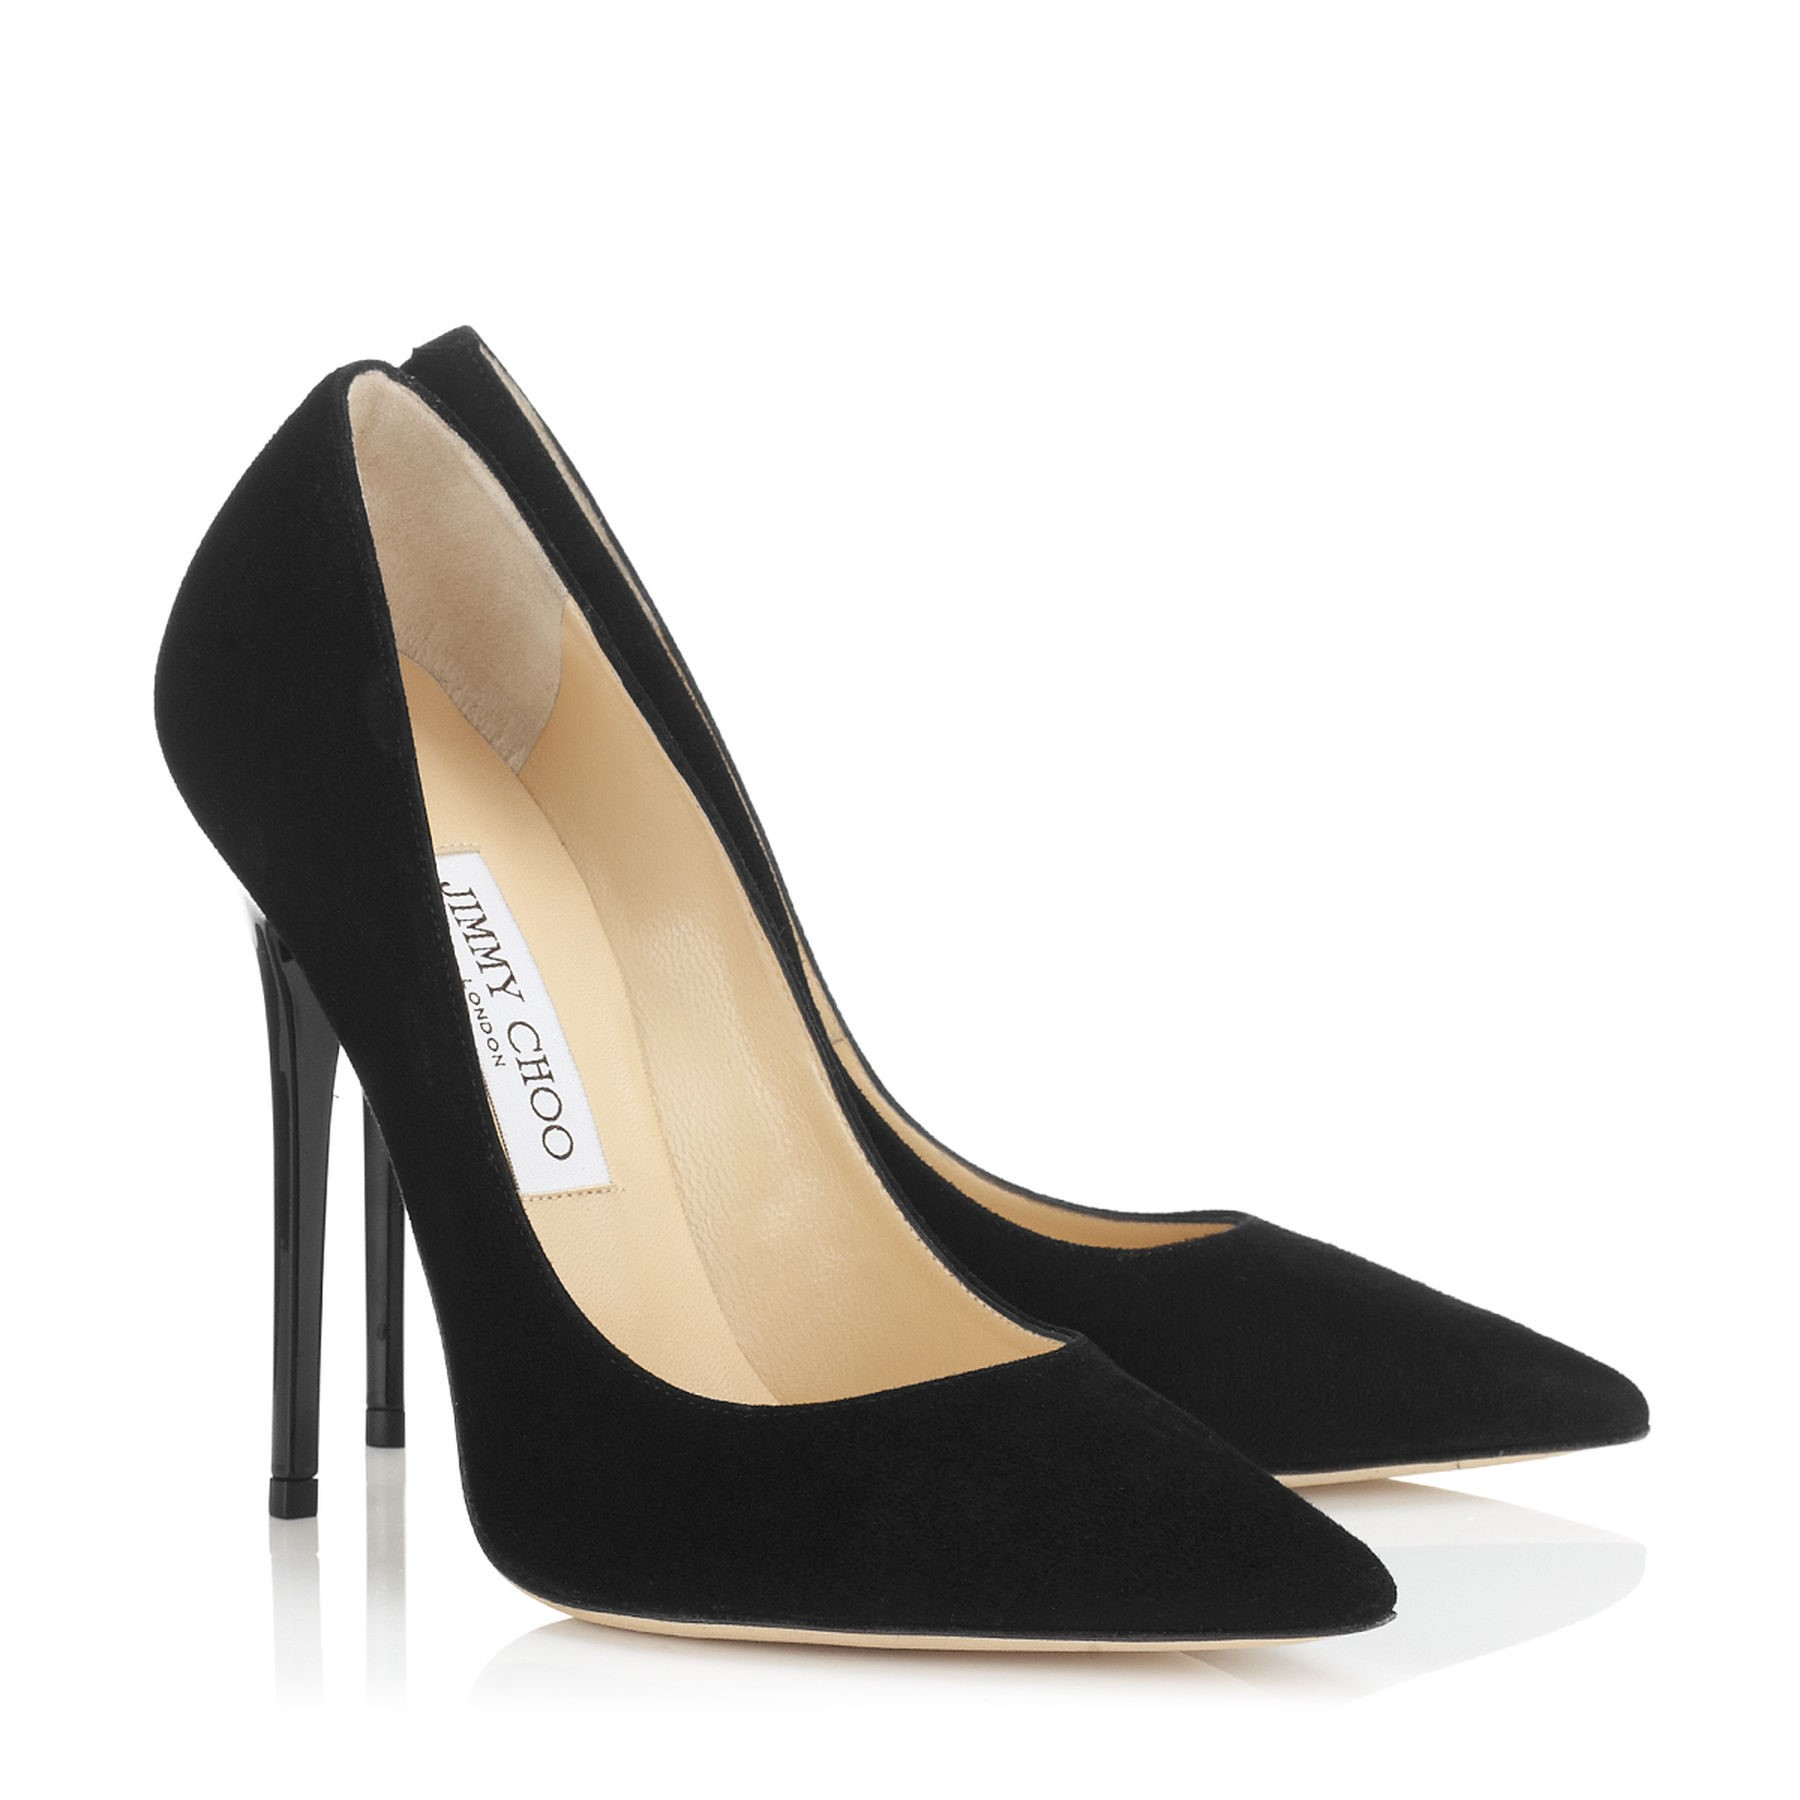 Essential Shoes essential shoes Essential Shoes Every Women Should Have – 2018 Black Pums